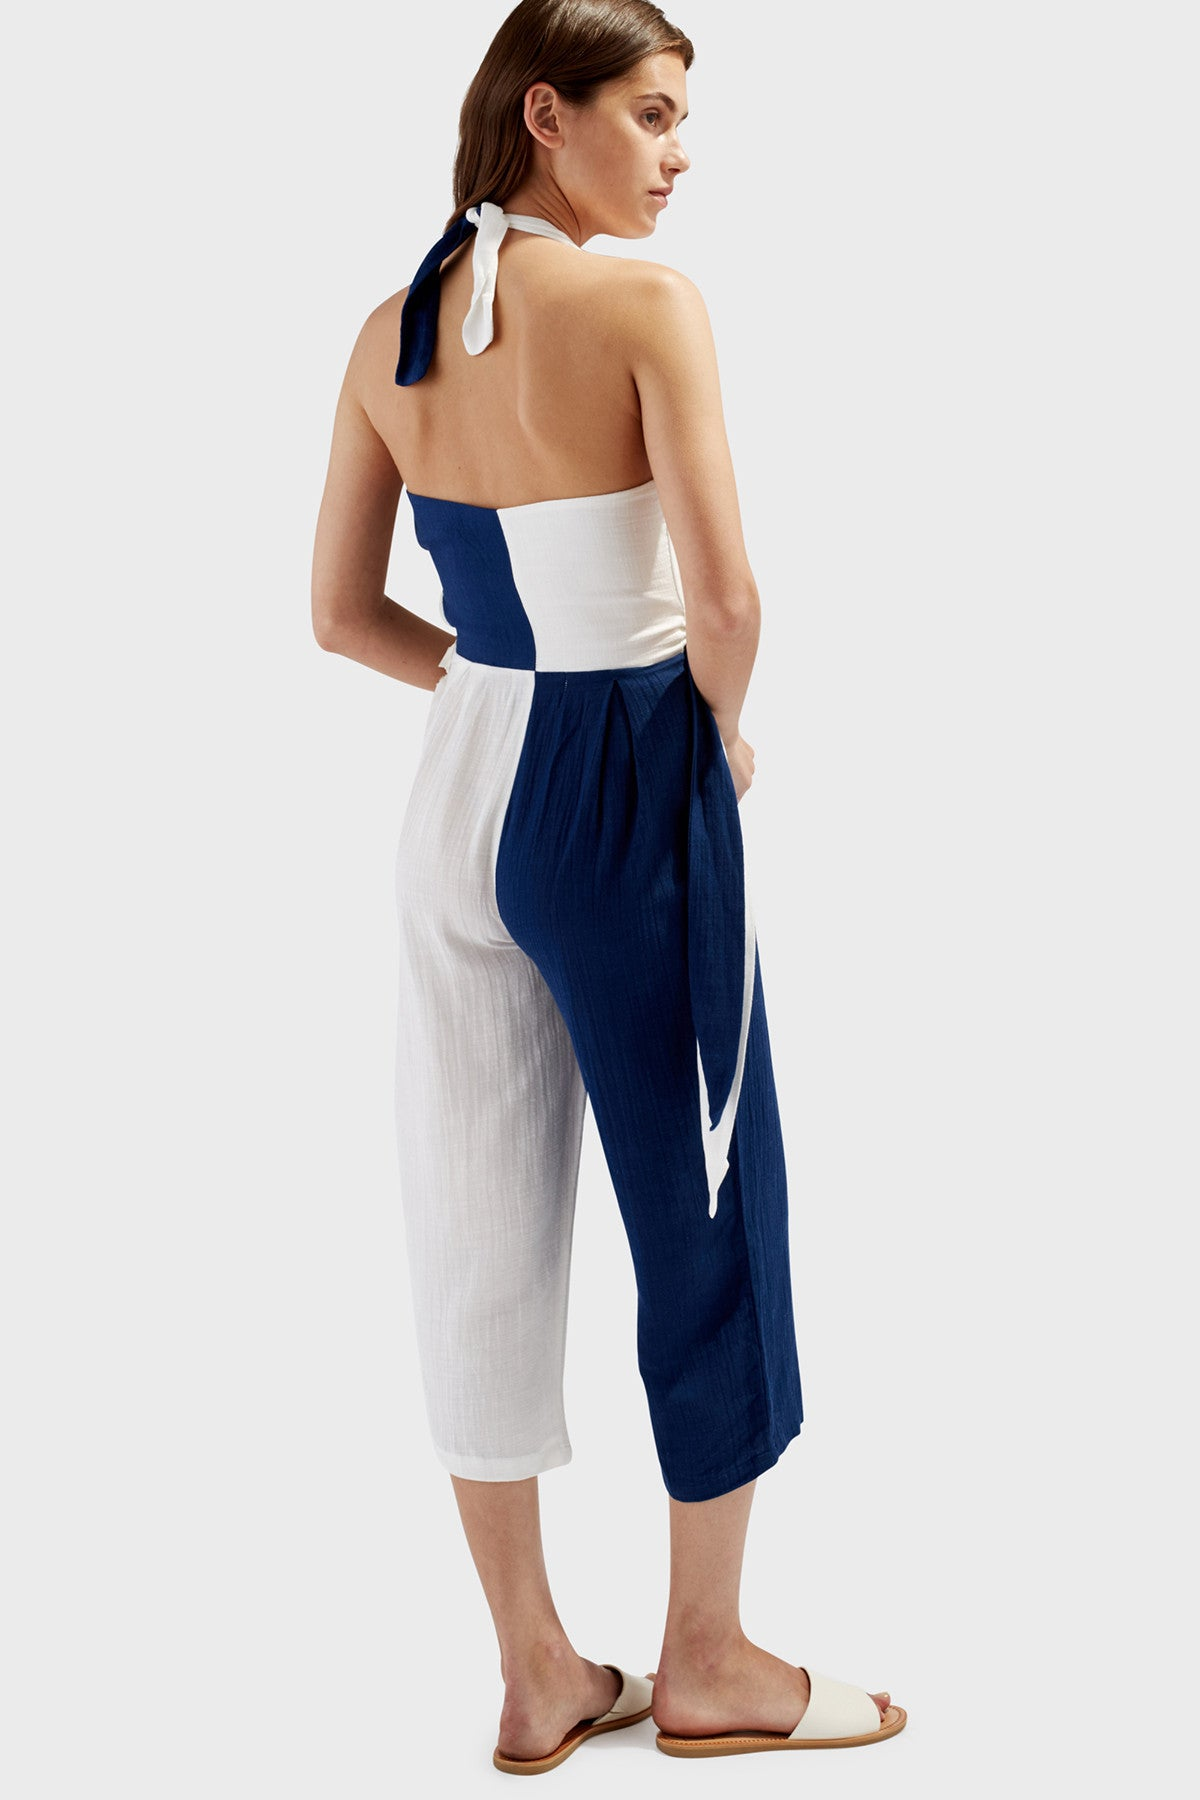 The Camille Jumpsuit